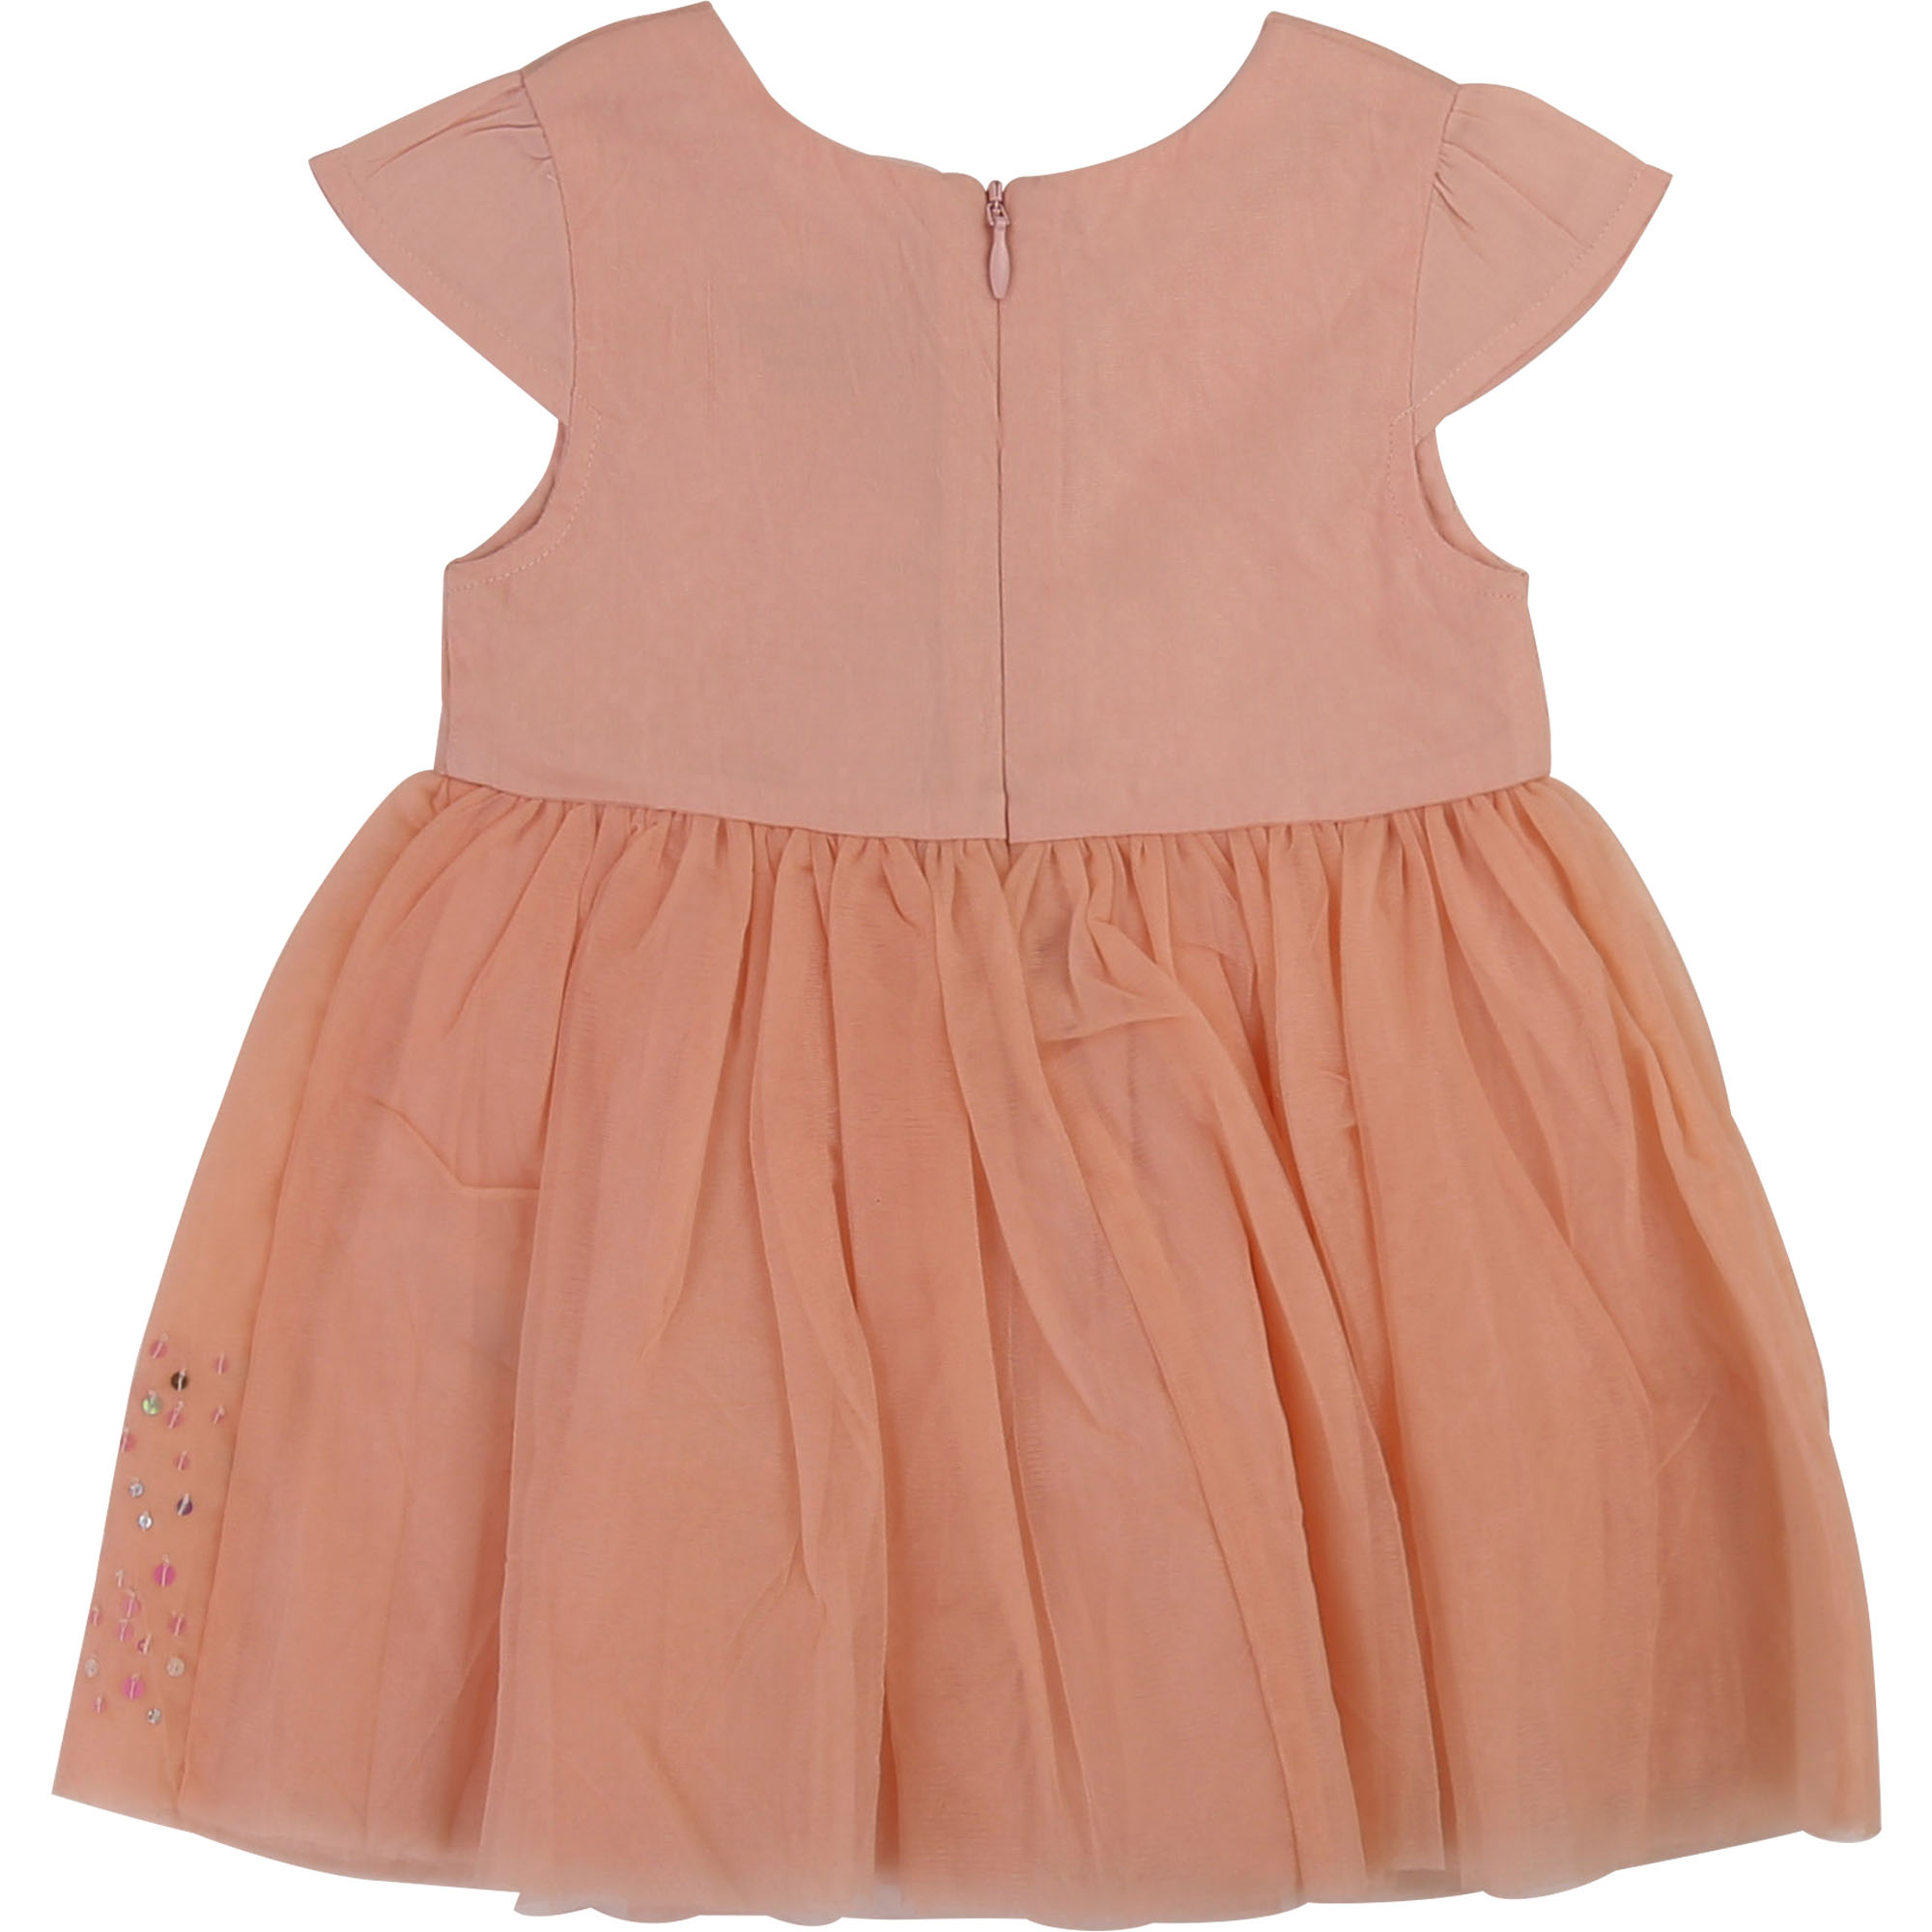 CEREMONY DRESS BILLIEBLUSH for GIRL